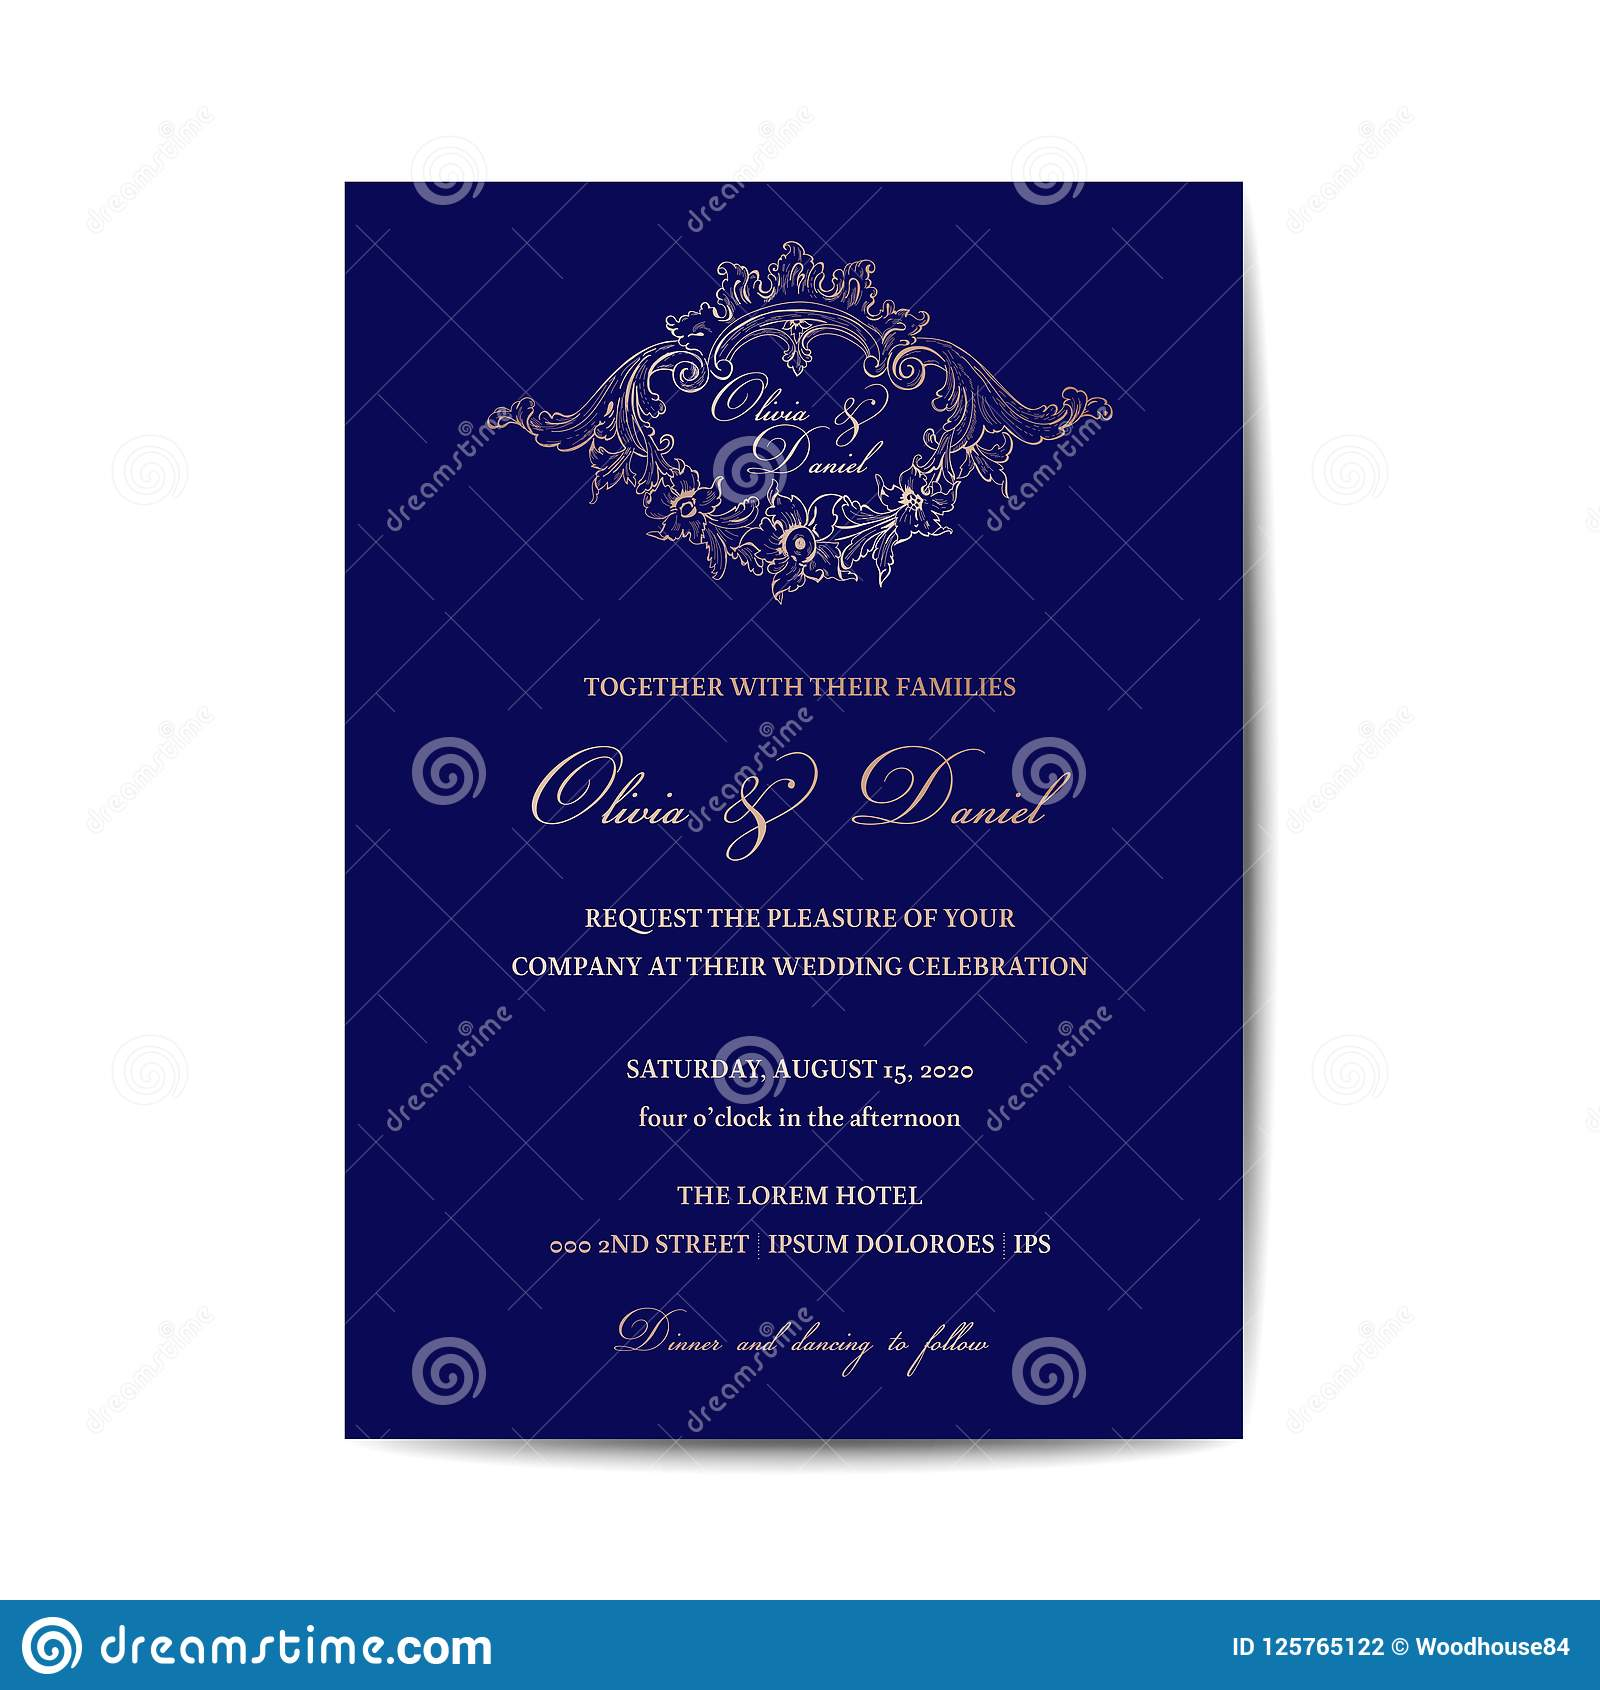 Passport Save The Date Template from thumbs.dreamstime.com